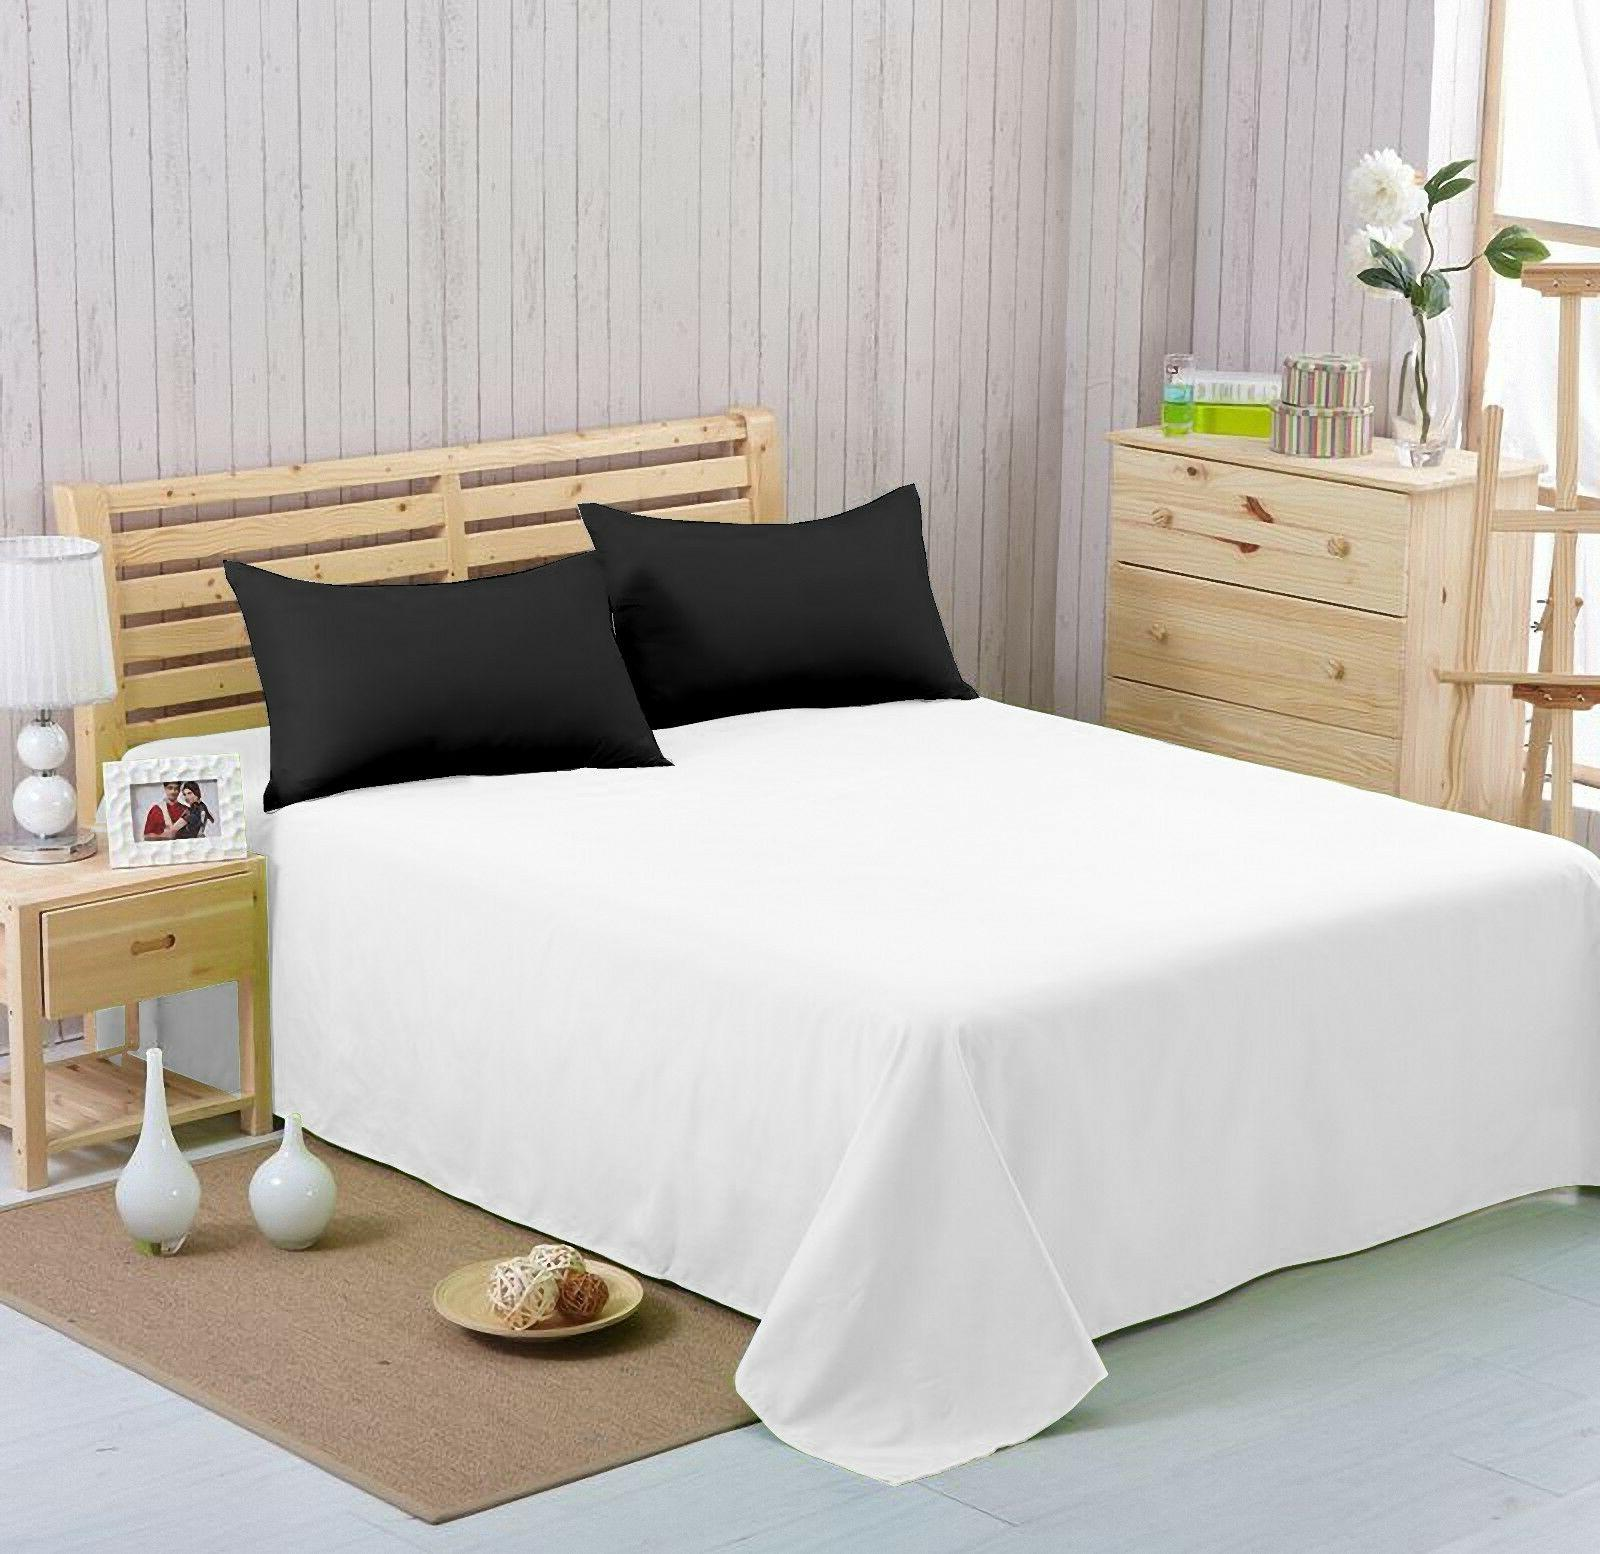 Flat sheet - Soft,Breathable& Comfortable ,Hotel Quality,